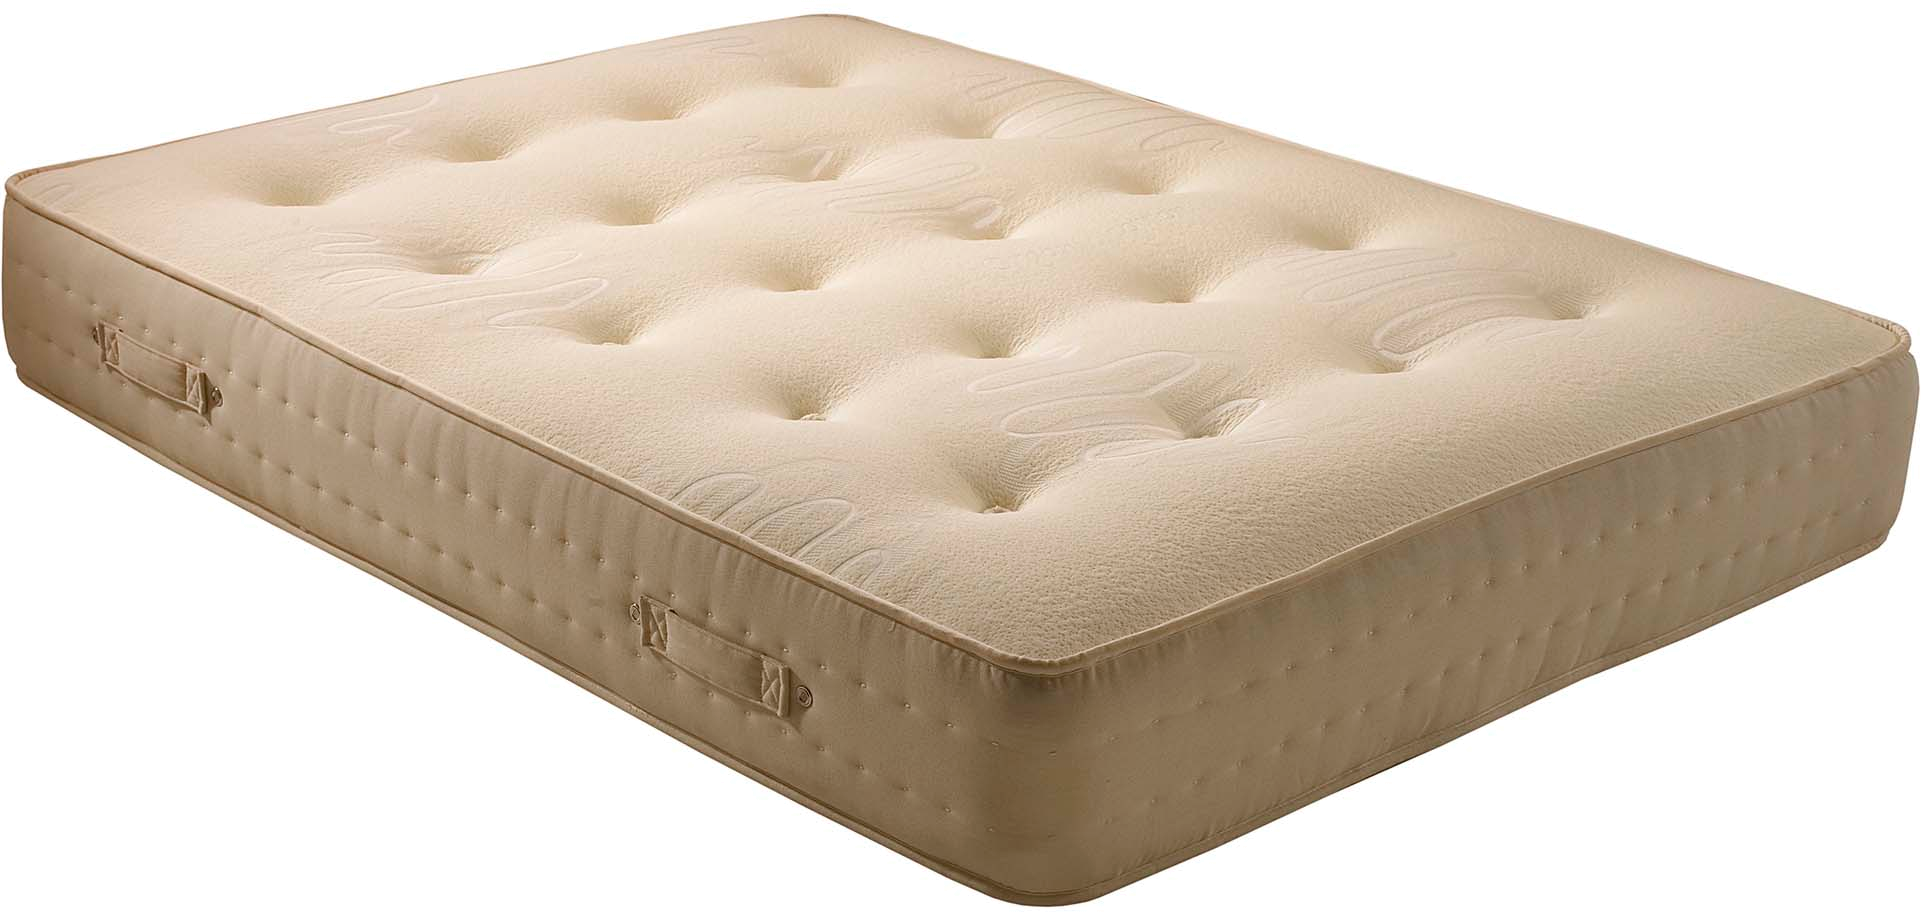 mattress icon png. Best Free Mattresse In PNG Mattress Icon Png